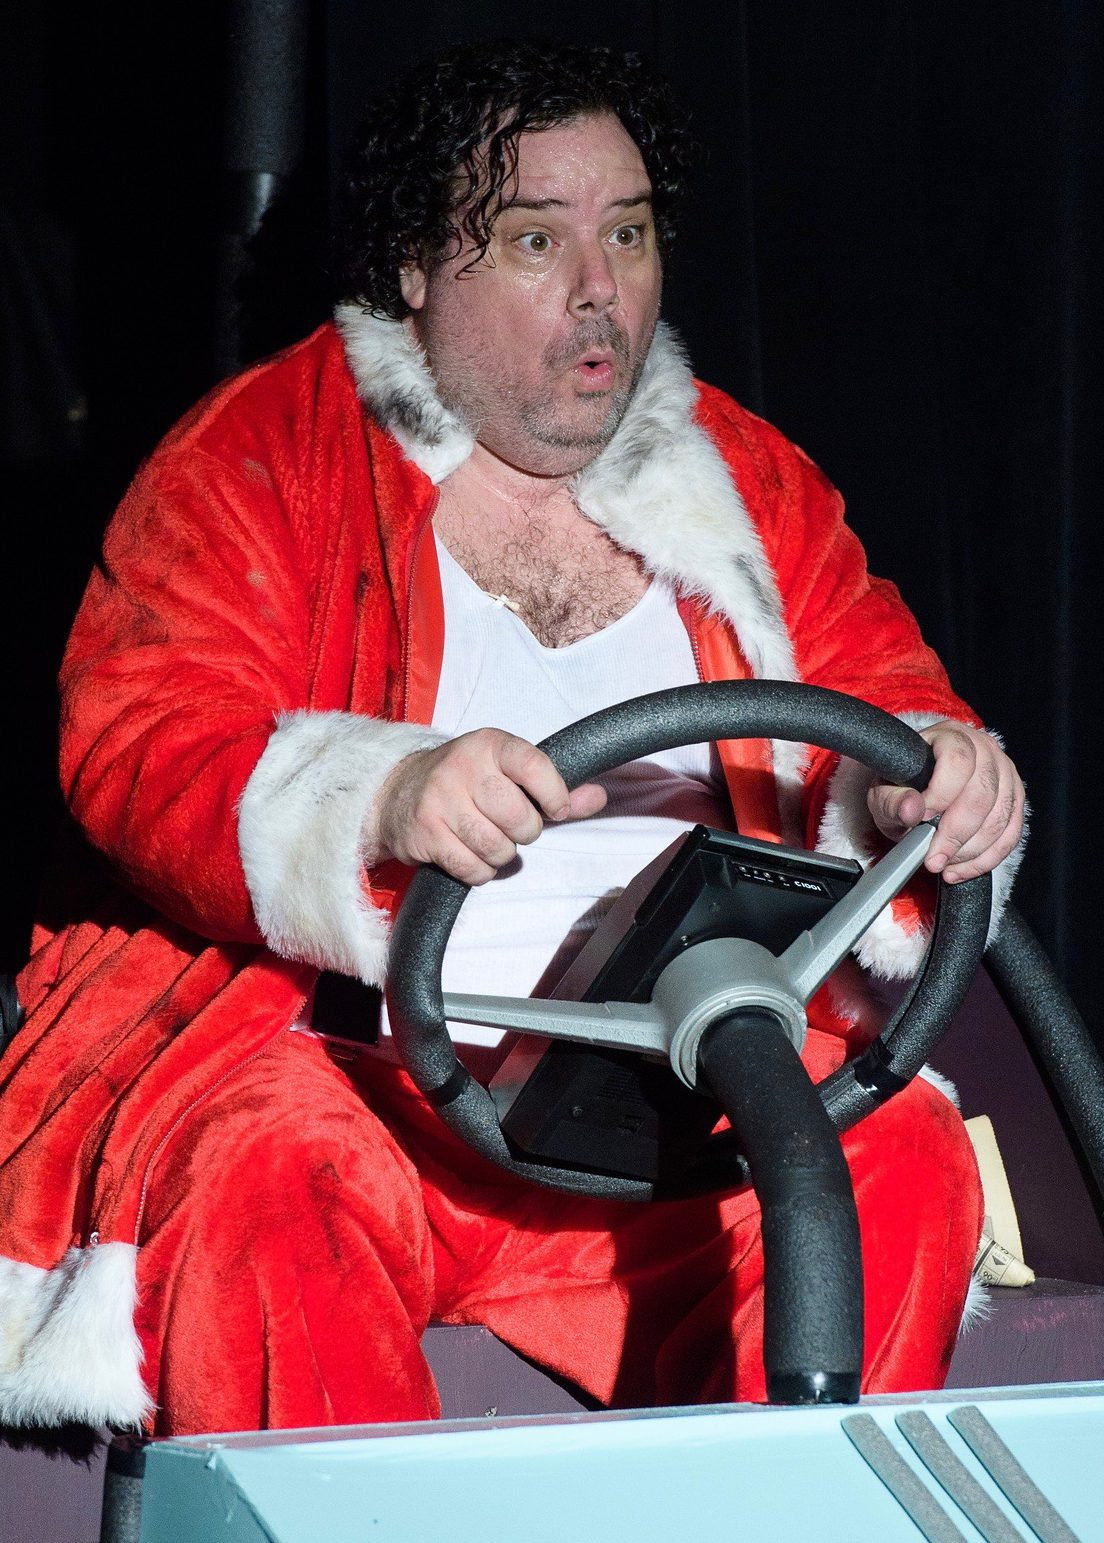 Samuel Byck (Rob James), dressed in the Santa suit he once wore to protest outside the White House, heads farther off the rails.